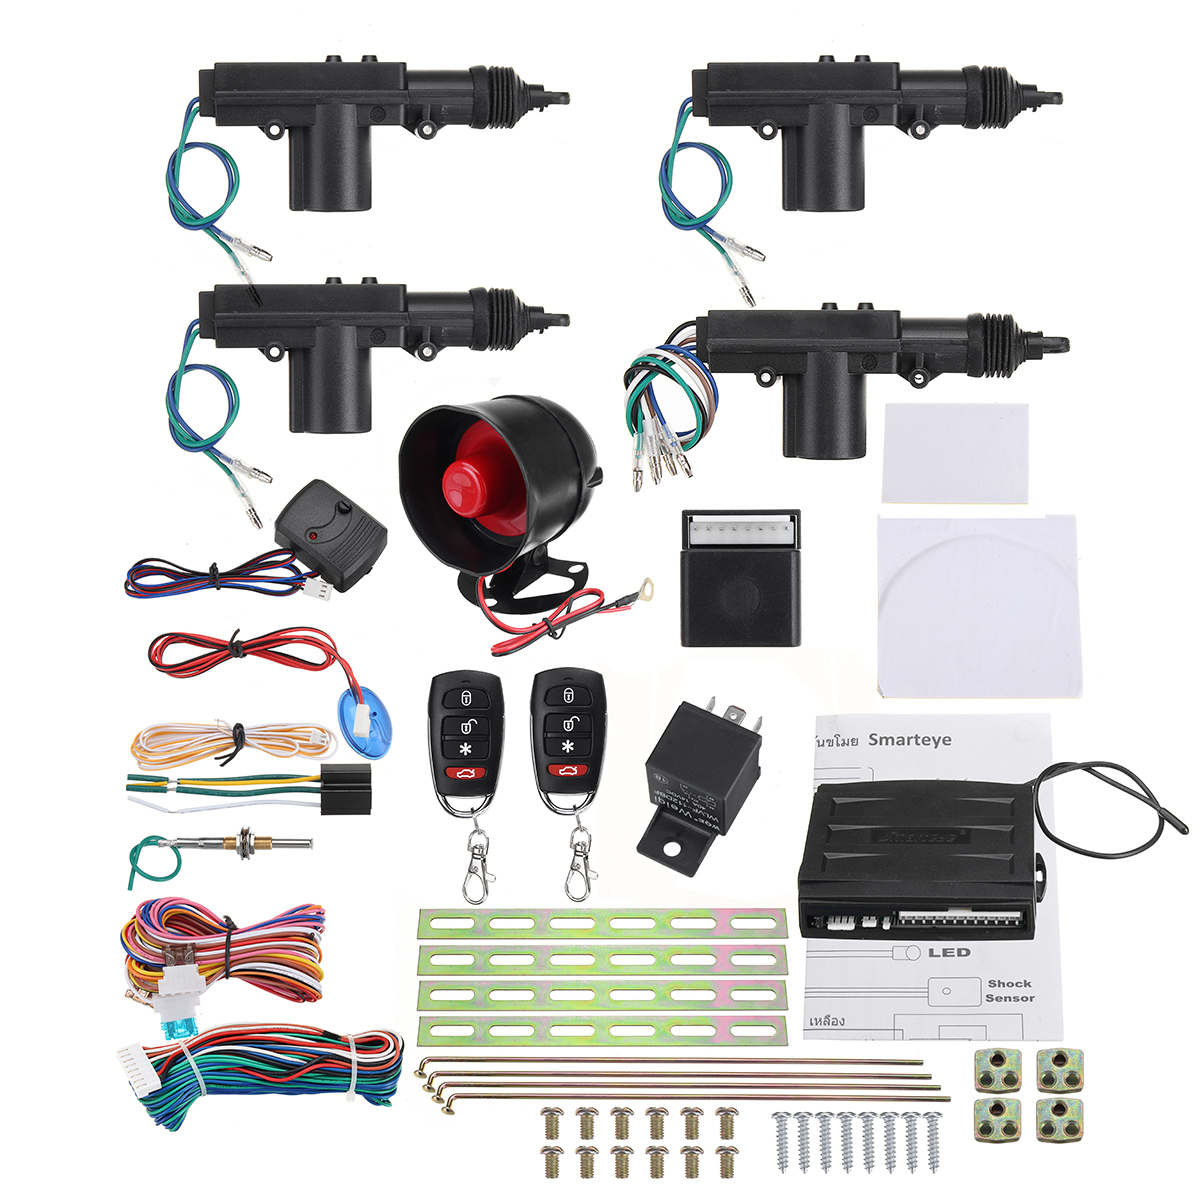 One set Remote Car Alarm Keyless Entry Security + 4 Door Power Lock Actuator Motor Kit door lock motor general purpose actuator kit door lock motor keyless entry concentrated for universal car 12 v power door lock